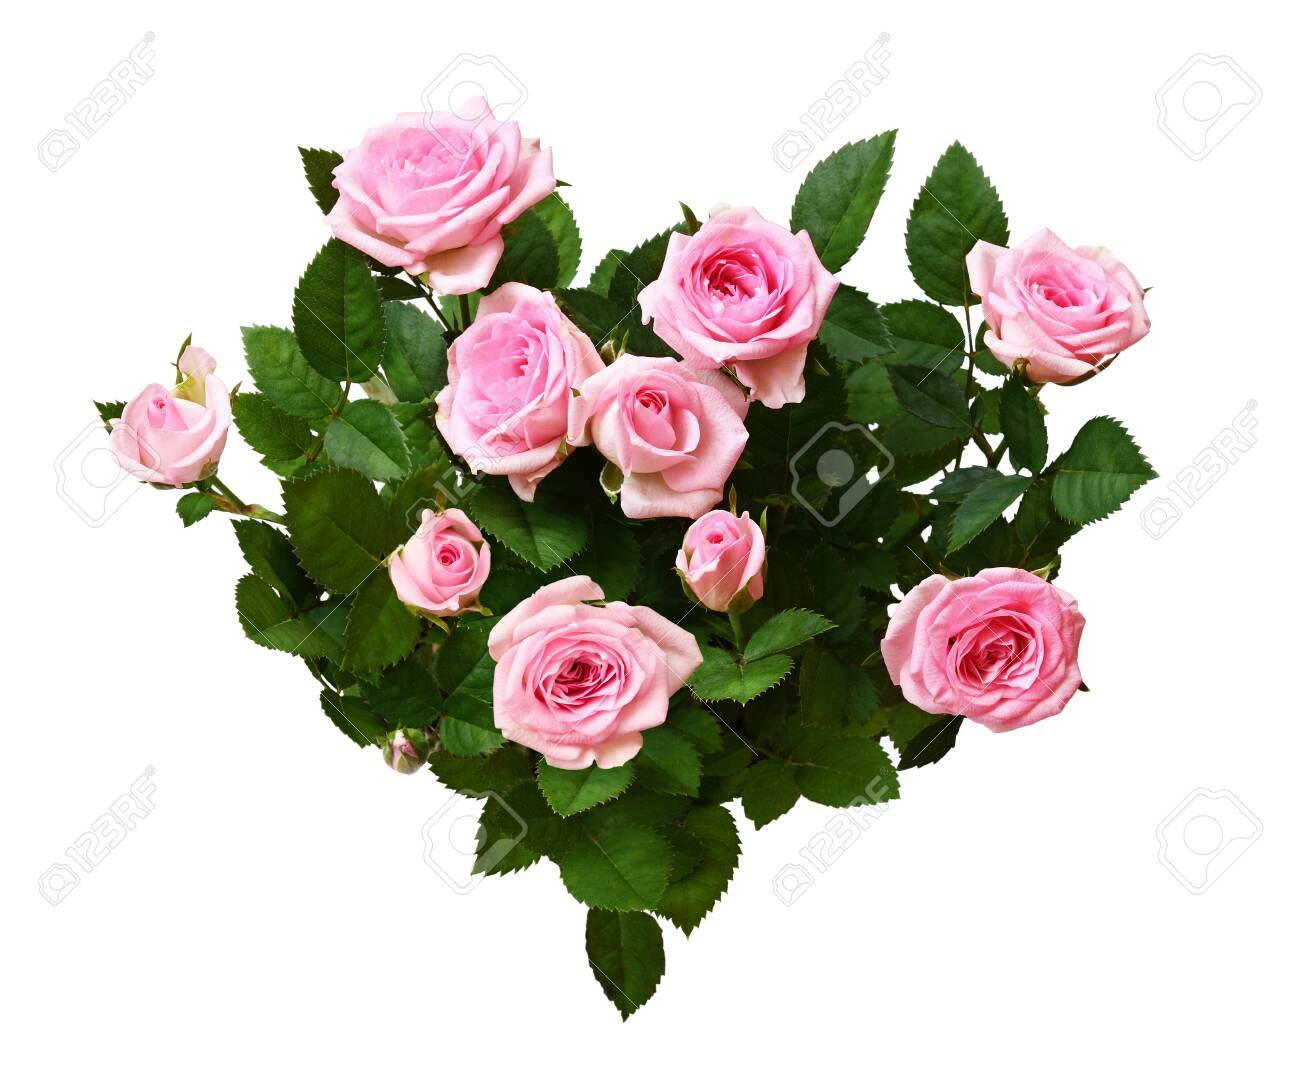 Pink rose flowers in a heart shape arrangement isolated on white - 125401749